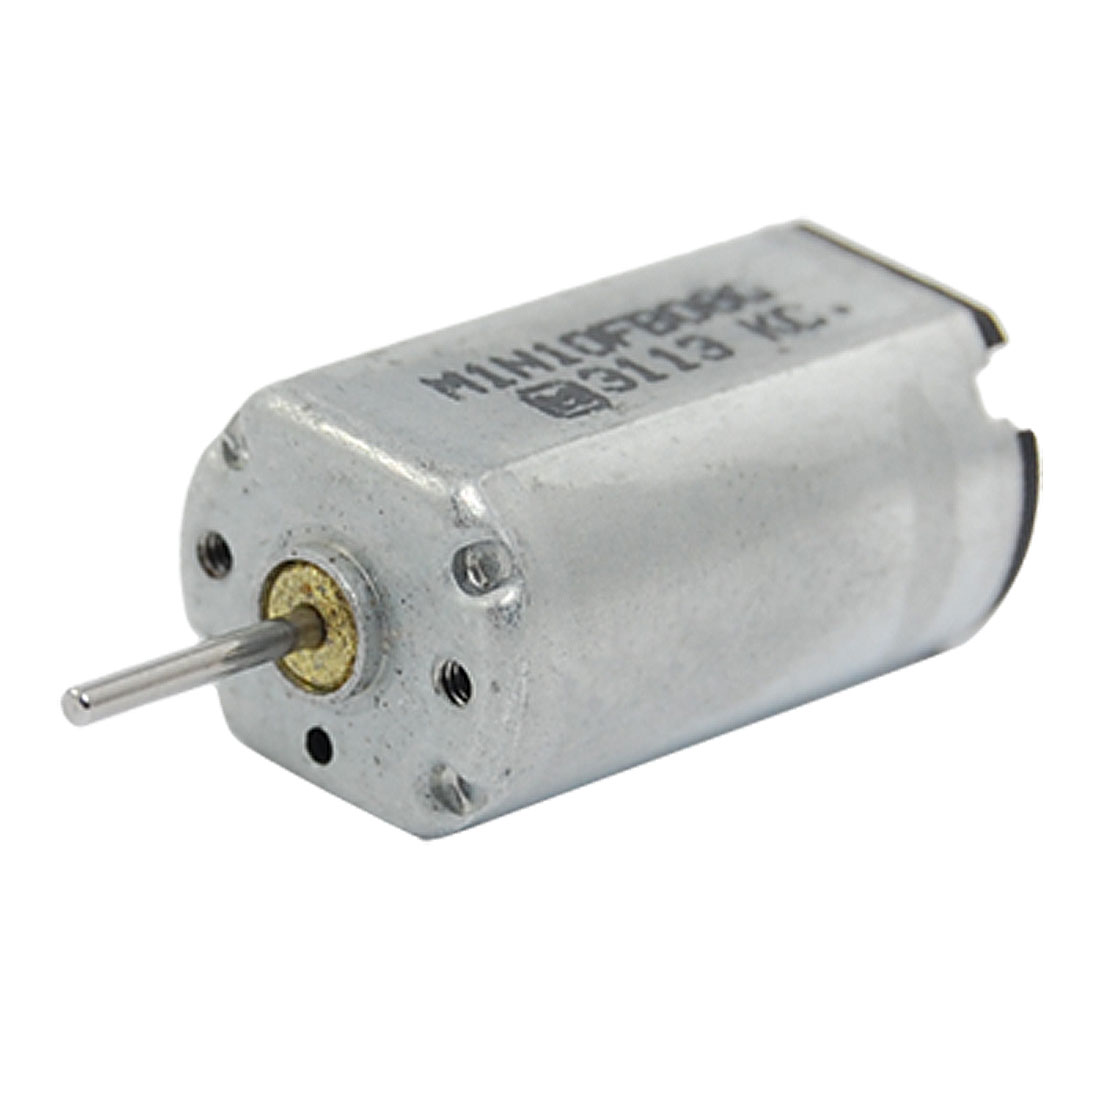 Repairing Part 1mm Shaft 6V 9000RPM 0.01A DC Mini Motor for DIY Toys